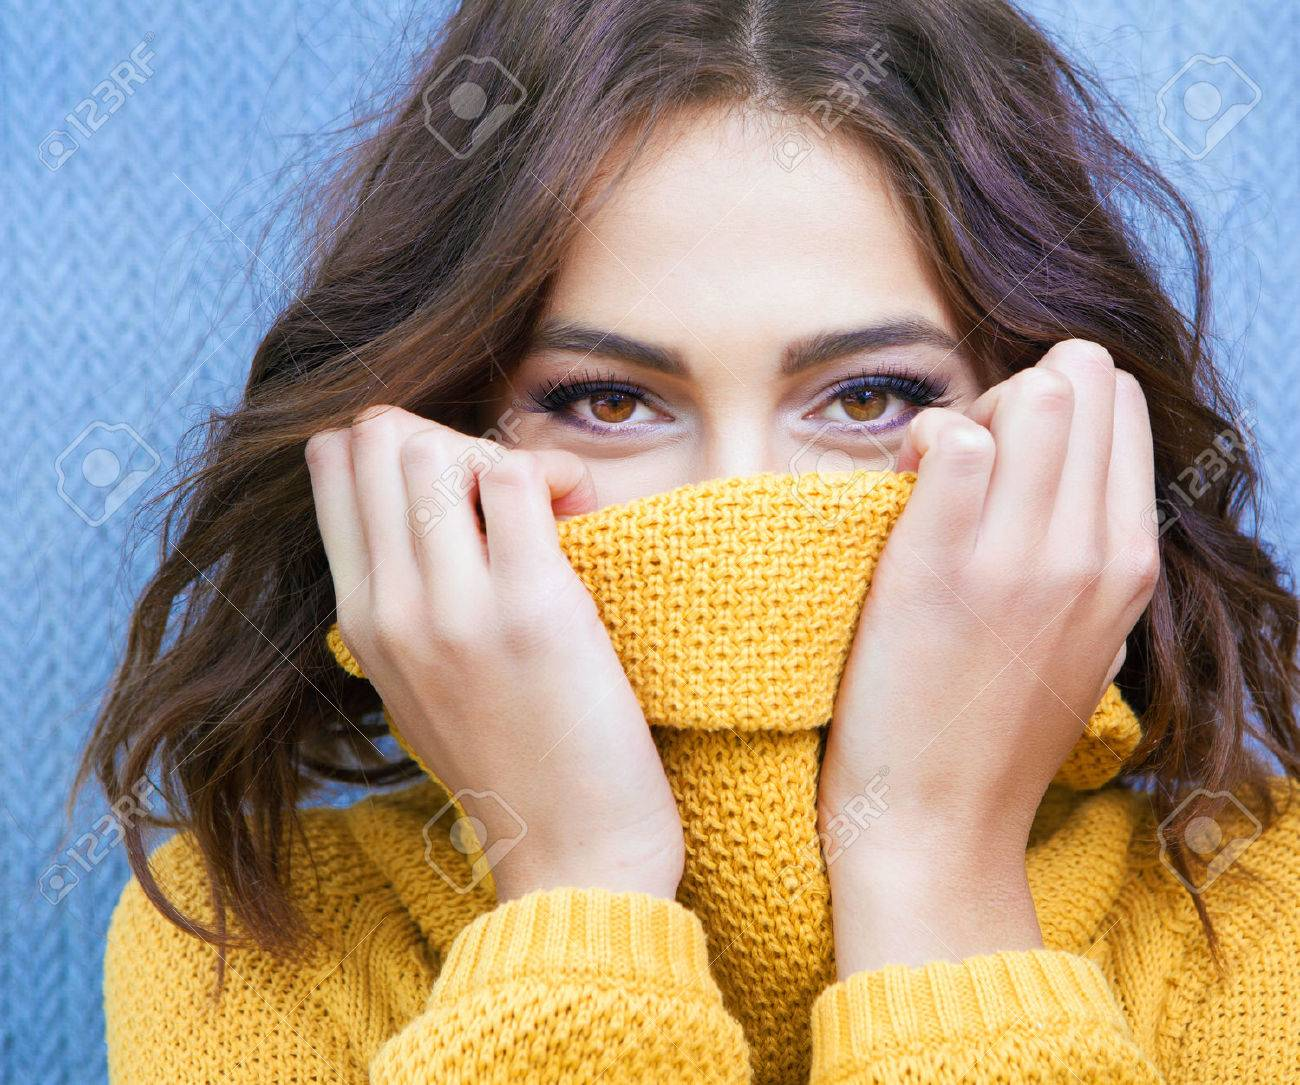 Beautiful natural young shy brunette woman with smiling eyes wearing knitted sweater - 48120175